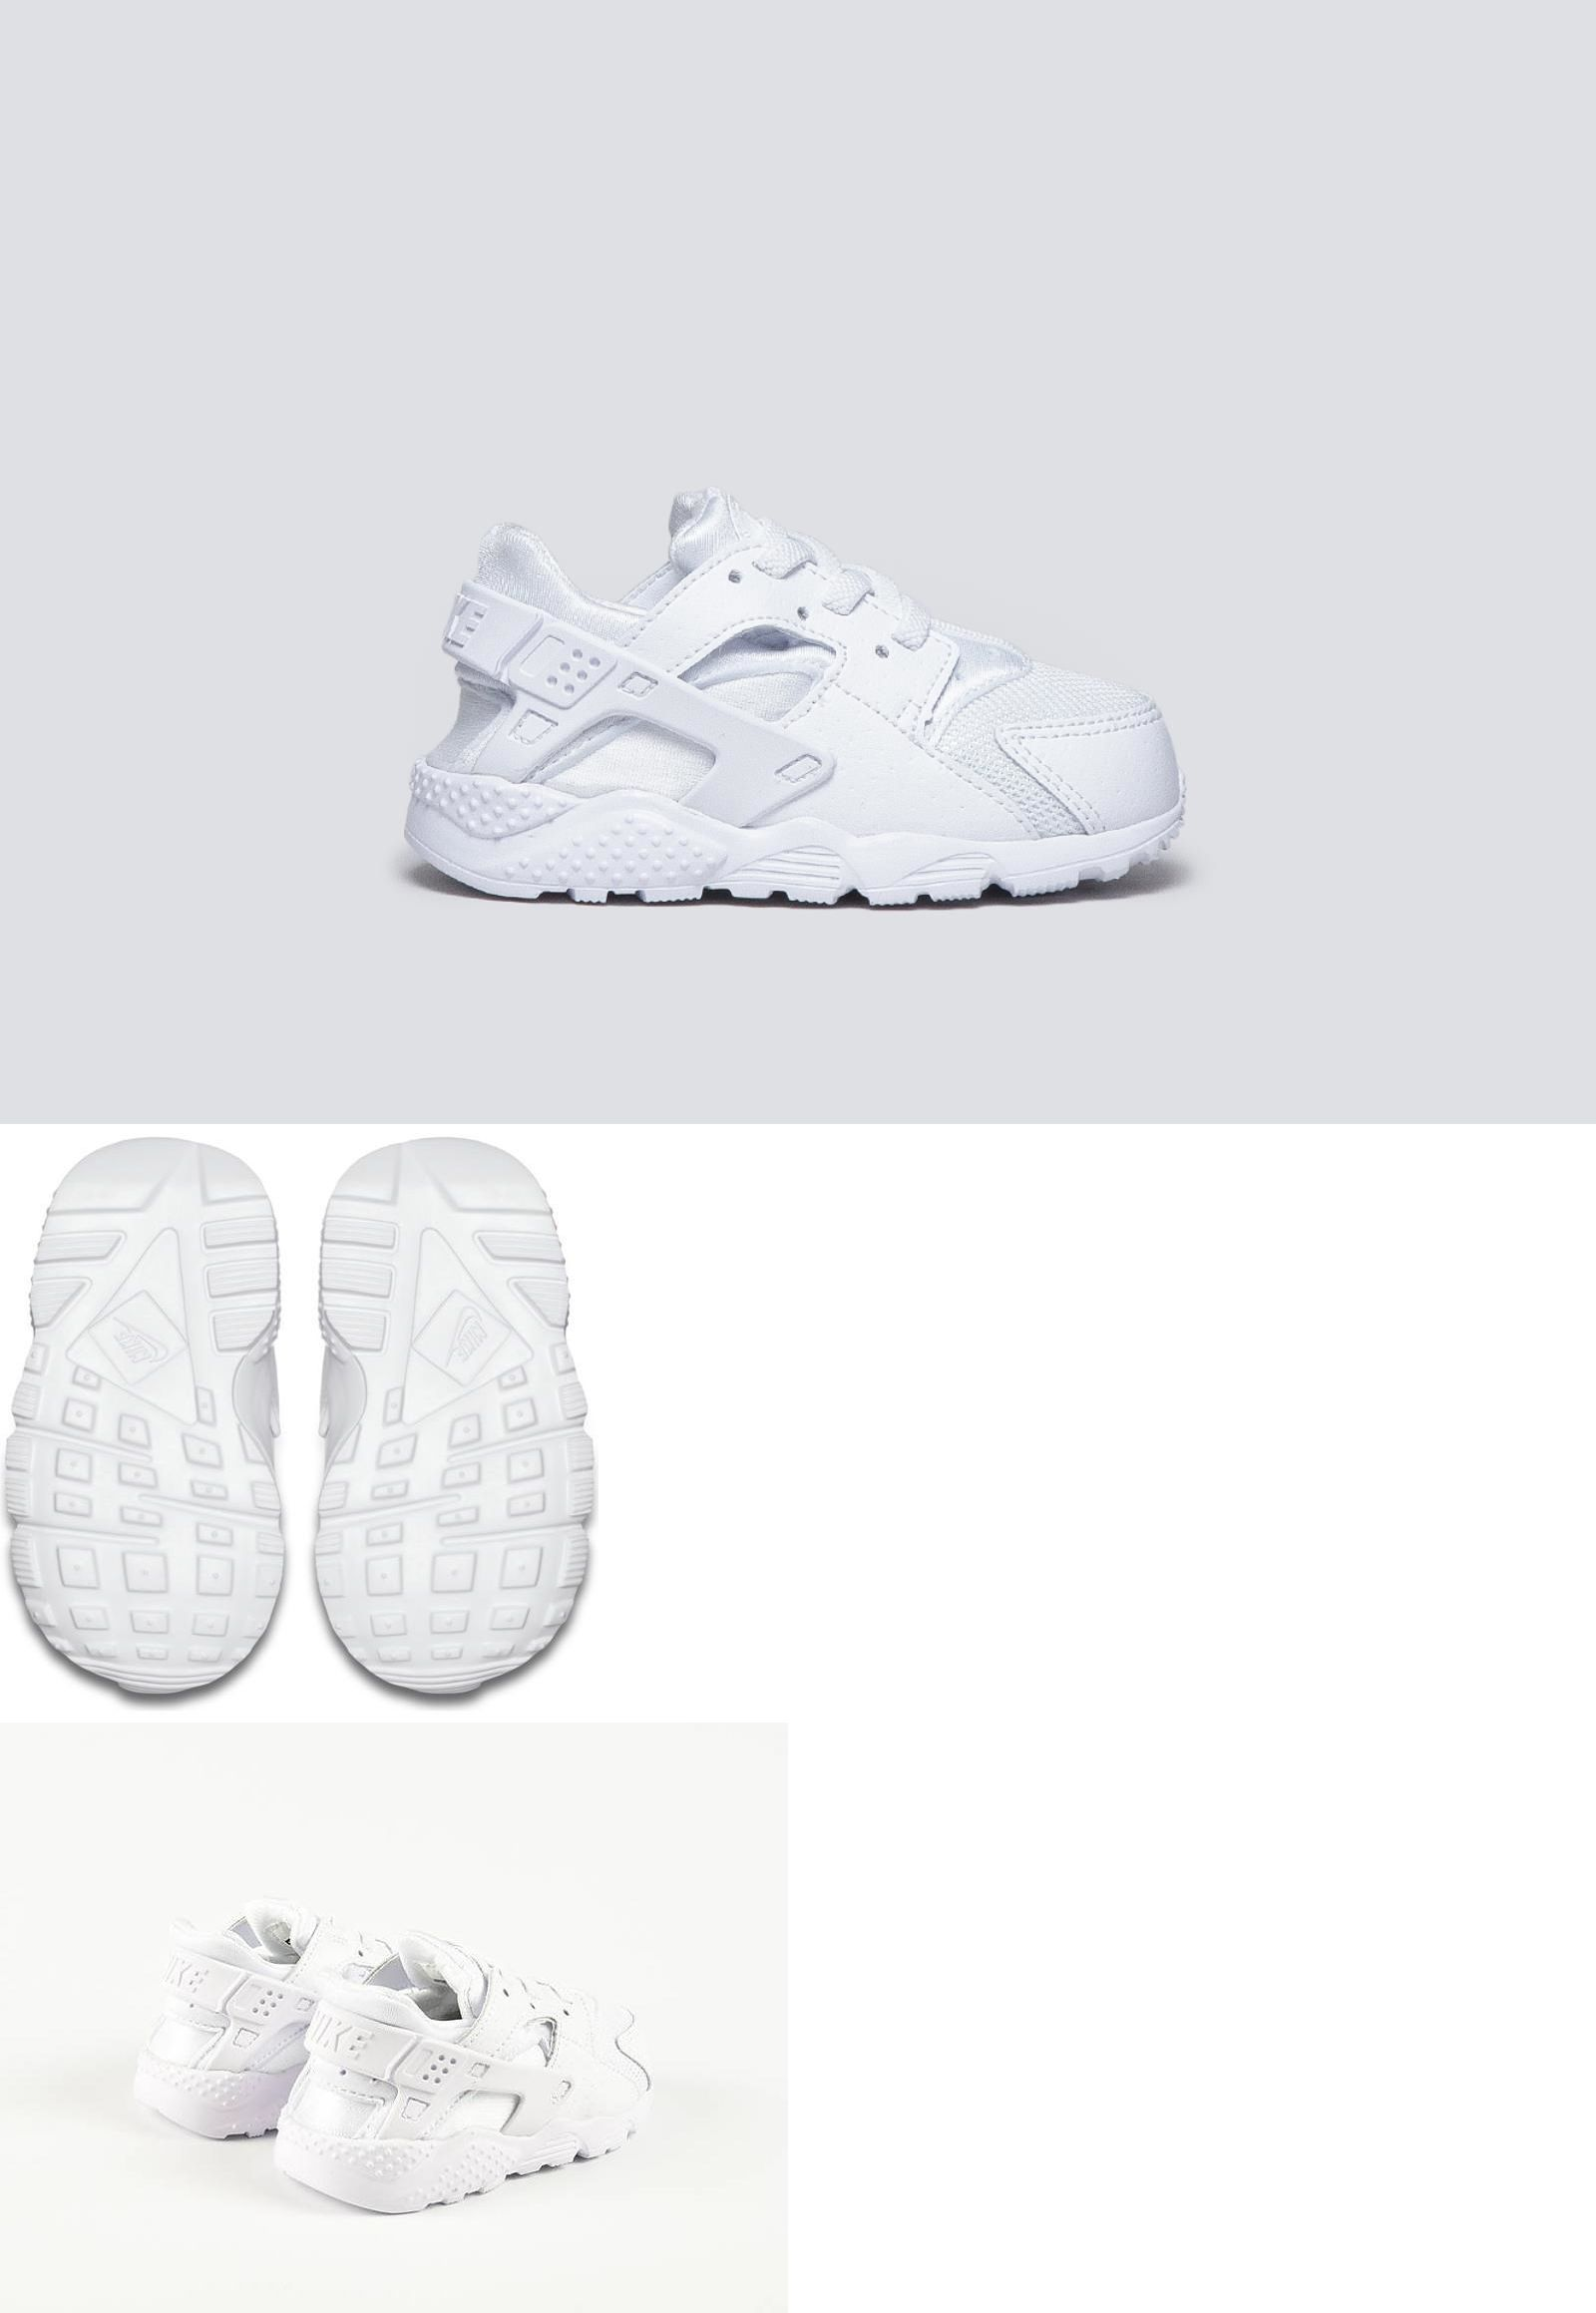 2ee9c590ab5 Baby Shoes 147285: Nike Huarache Run # 704950 110 White Pure Platinum  Toddler Sz 4 - 10 -> BUY IT NOW ONLY: $50 on eBay!